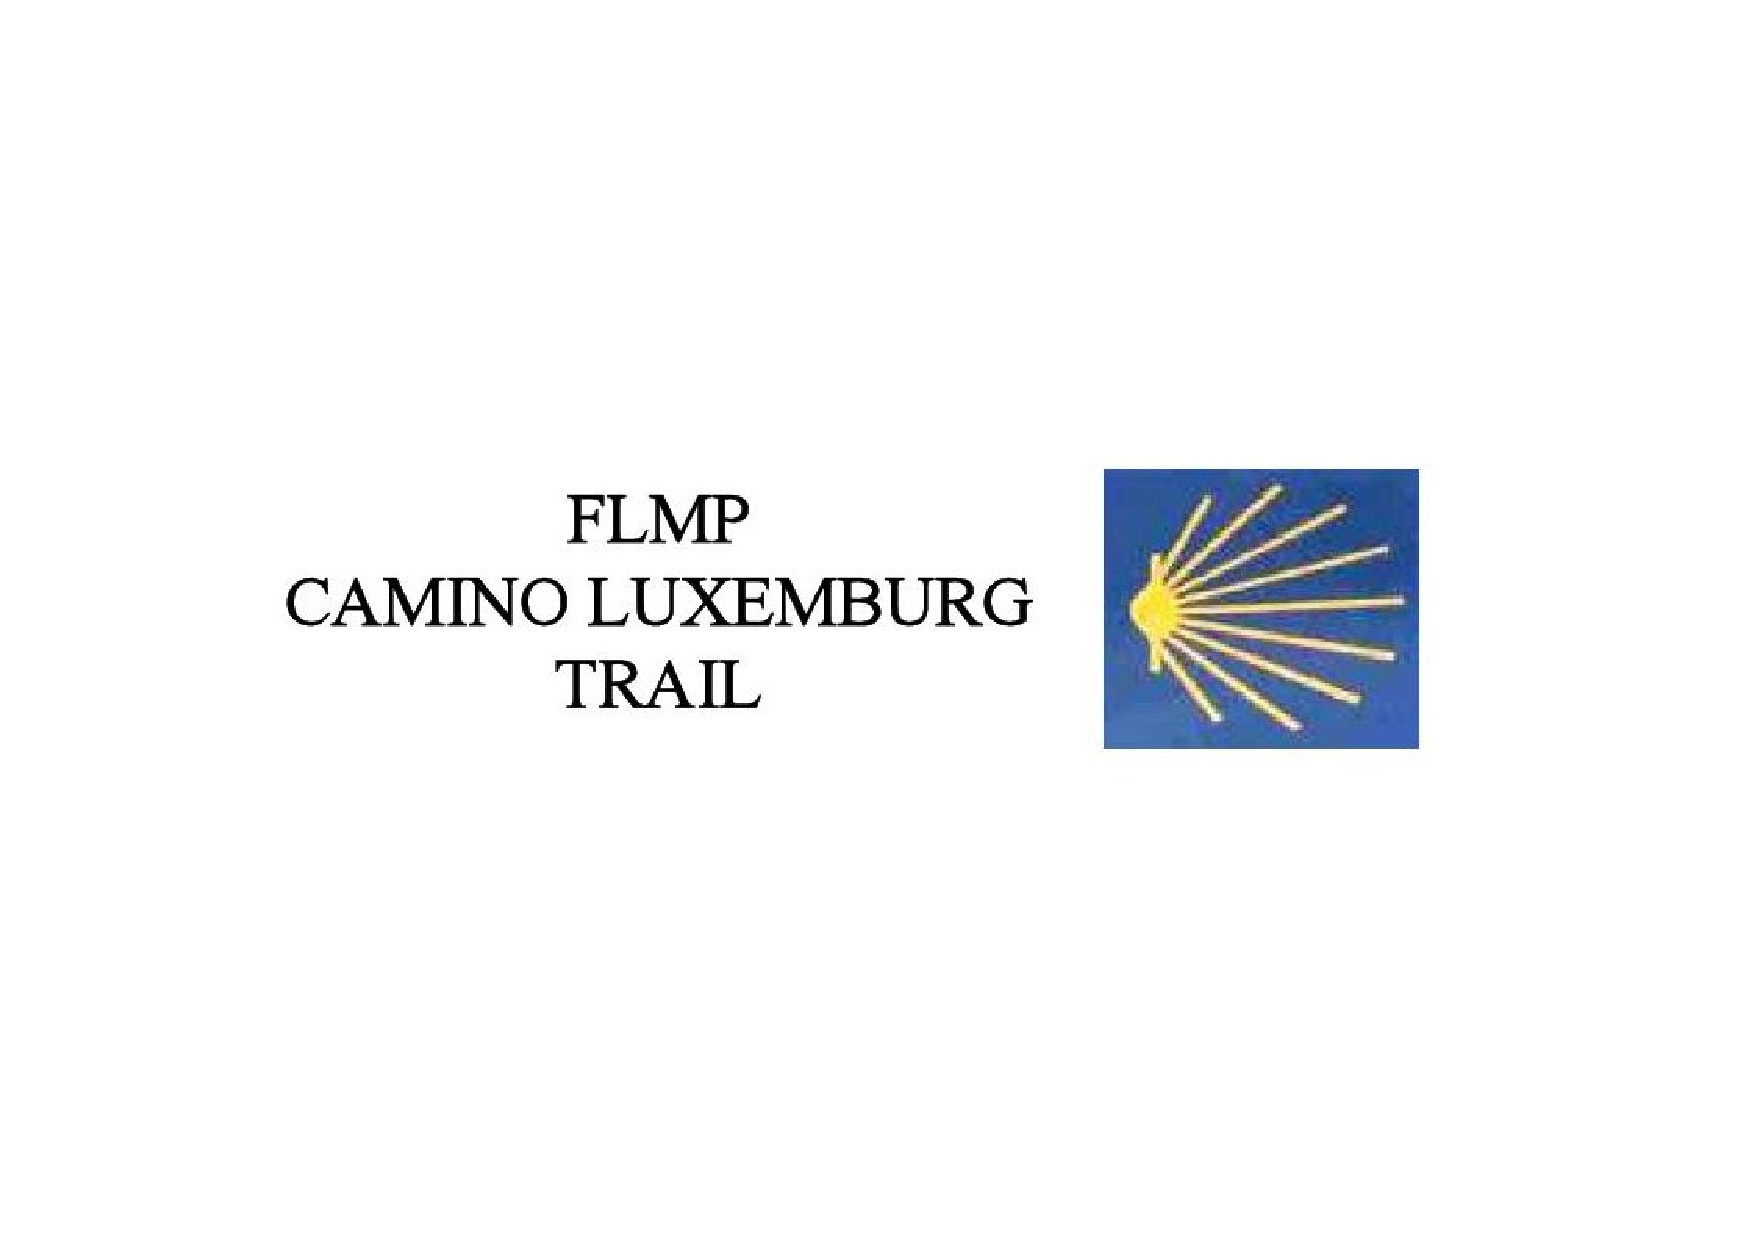 FLMP - CAMINO LUXEMBOURG - TRAIL